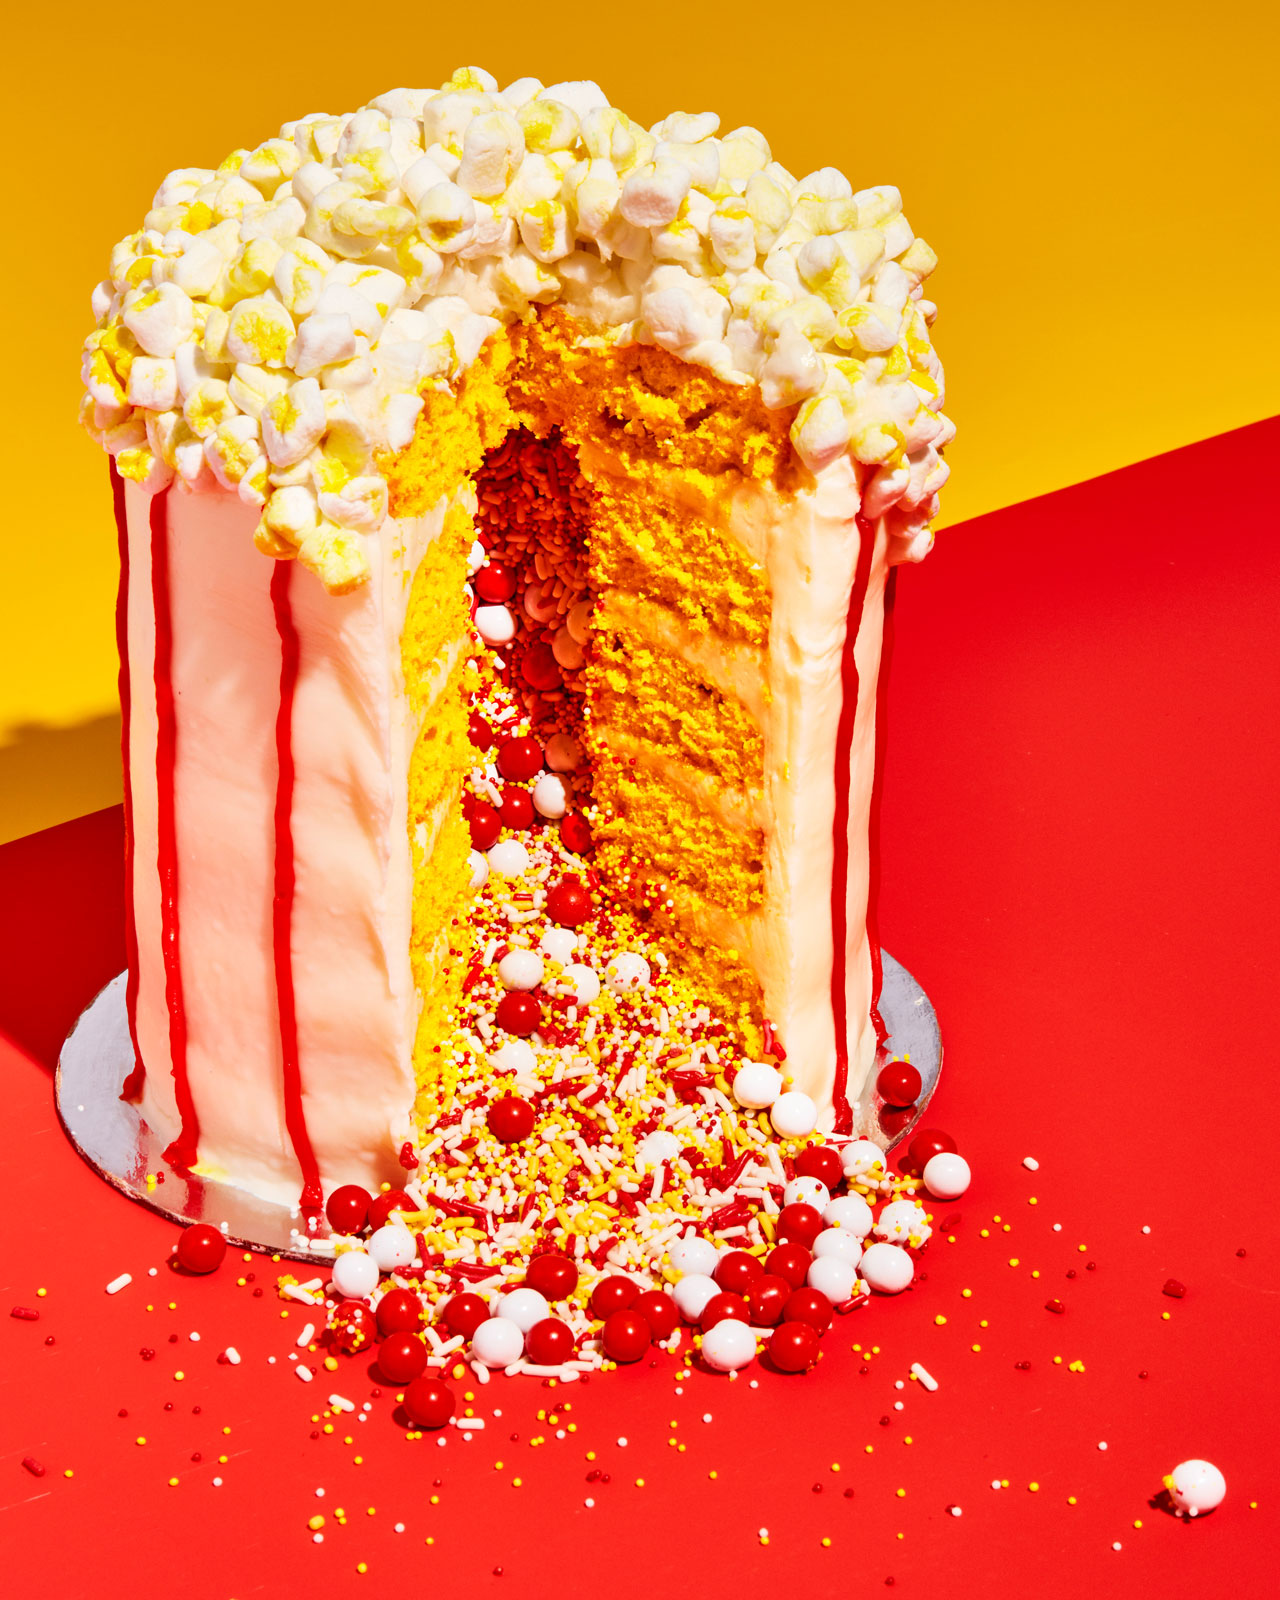 popcorn cake from the Power of Sprinkles cookbook